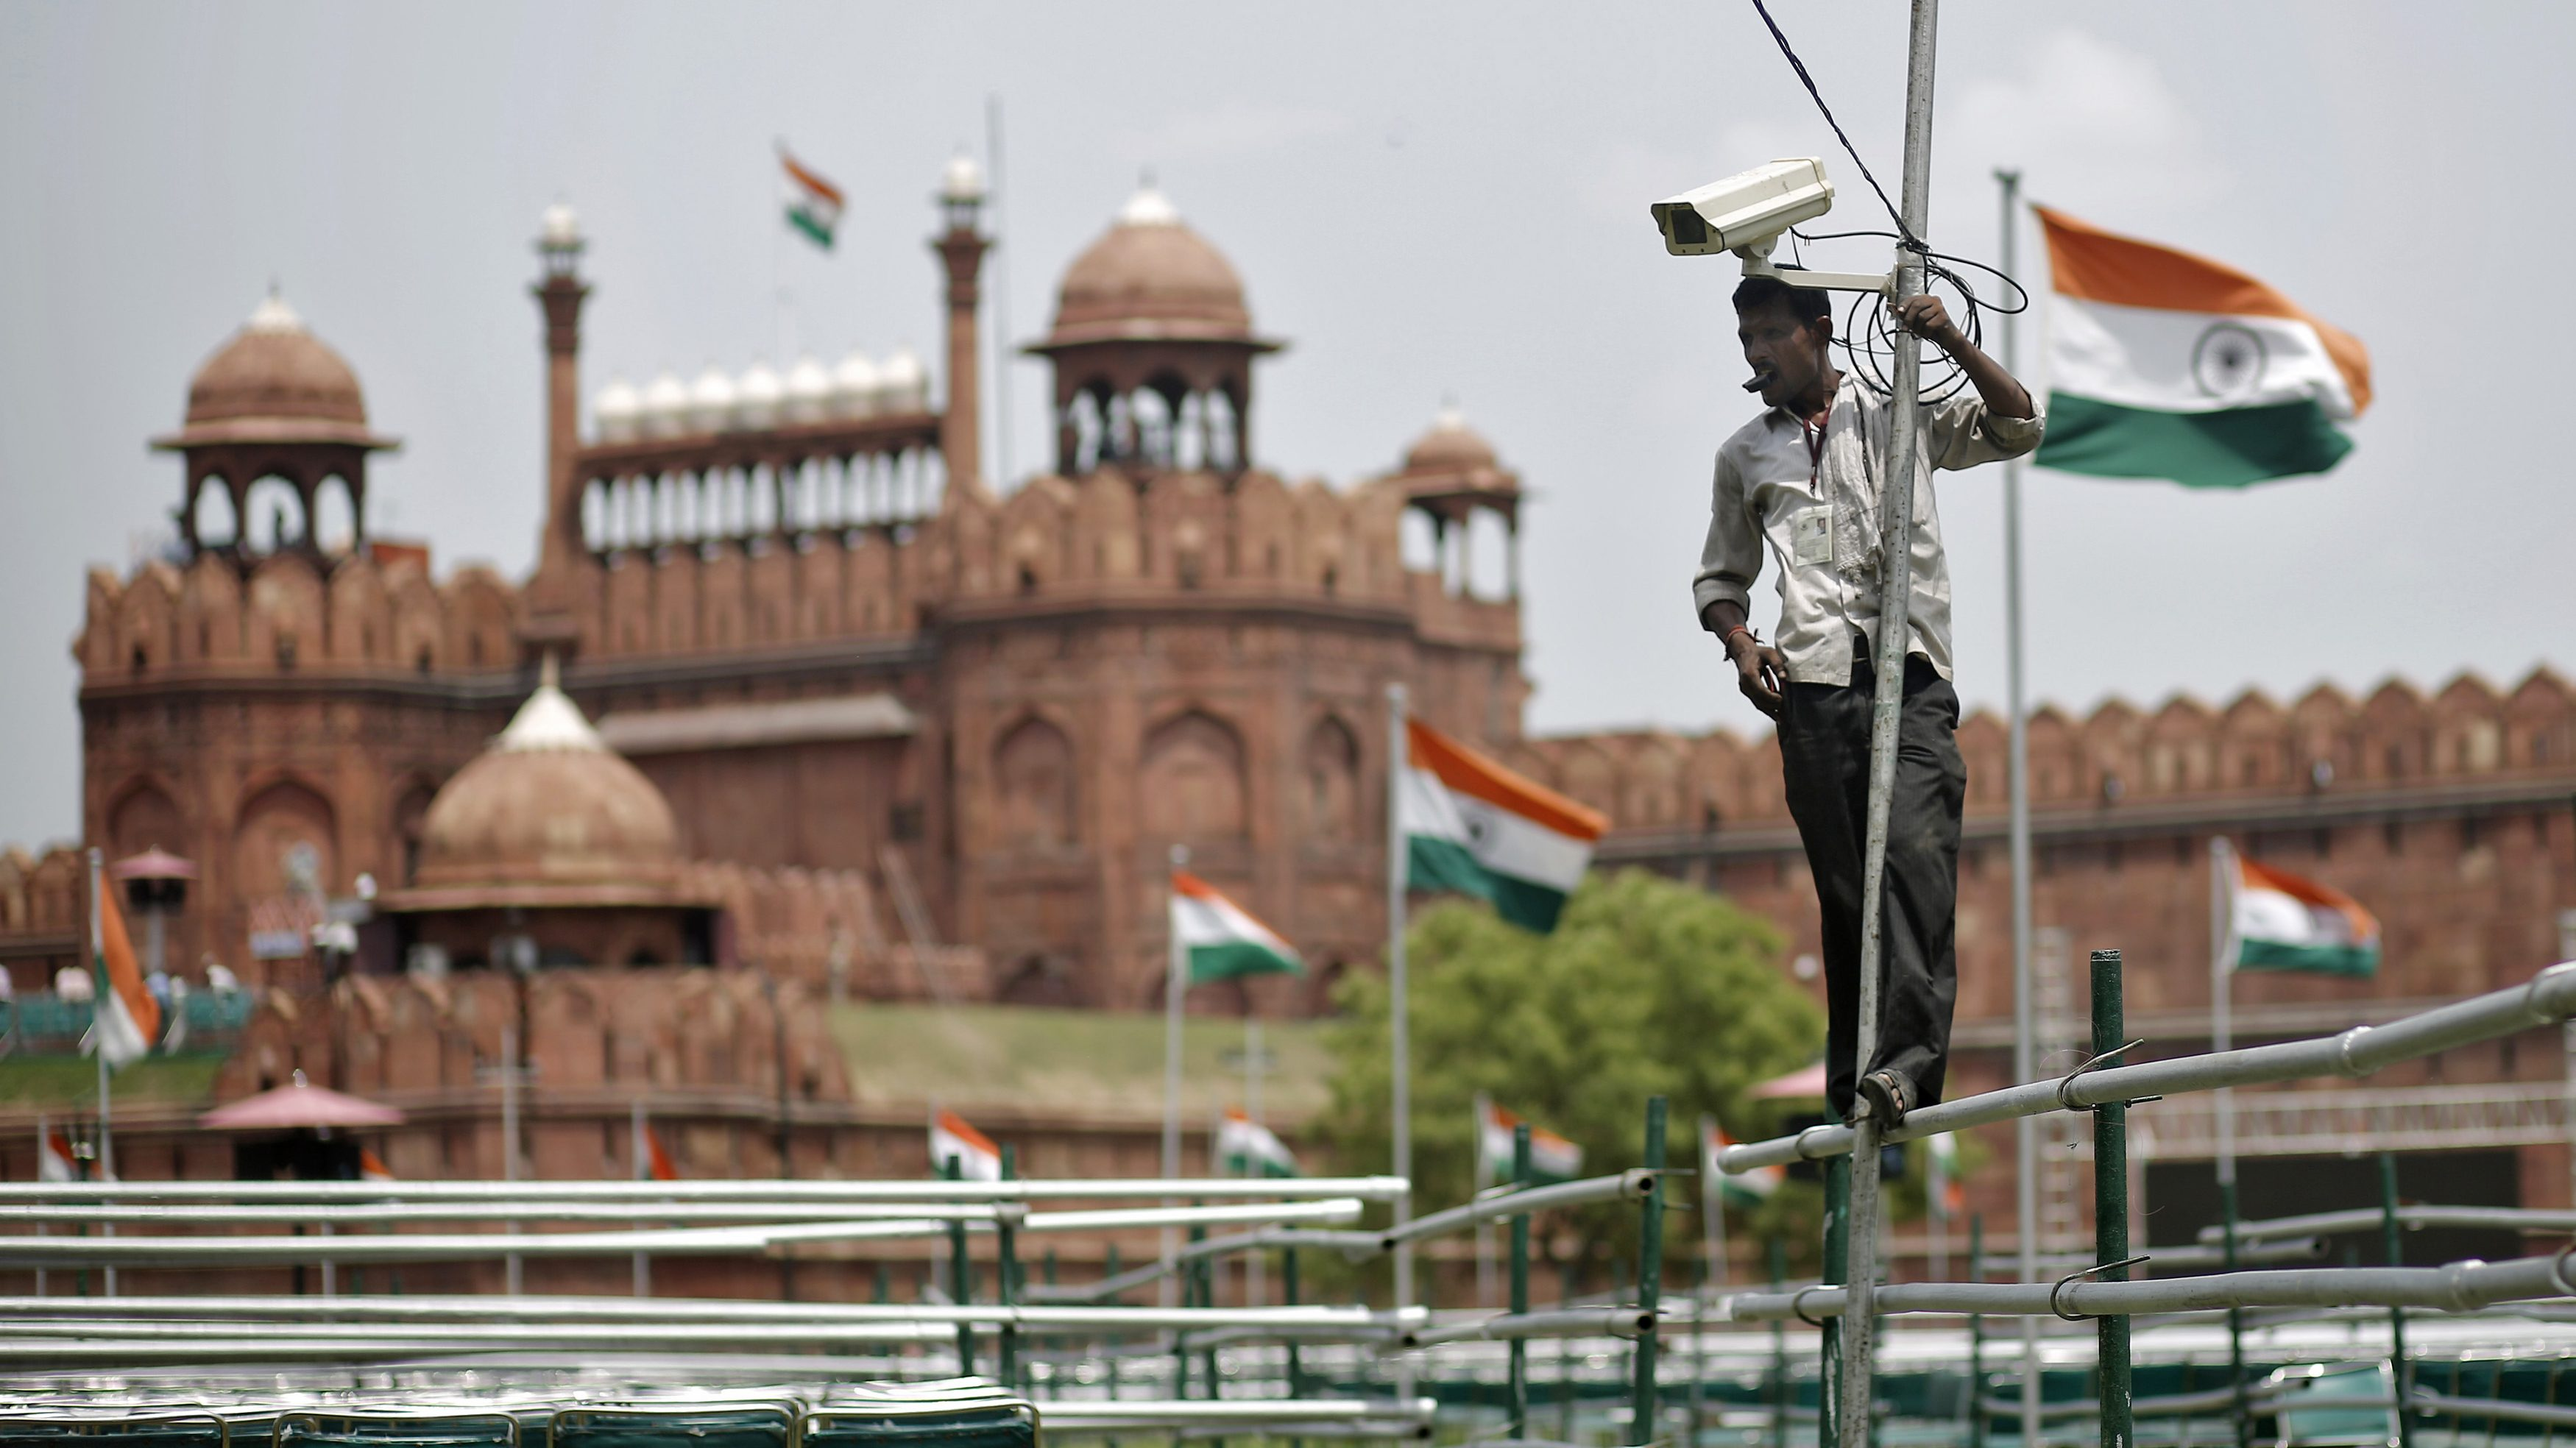 A worker installs a security camera in front of the historic Red Fort on the eve of India's Independence Day celebrations in Delhi